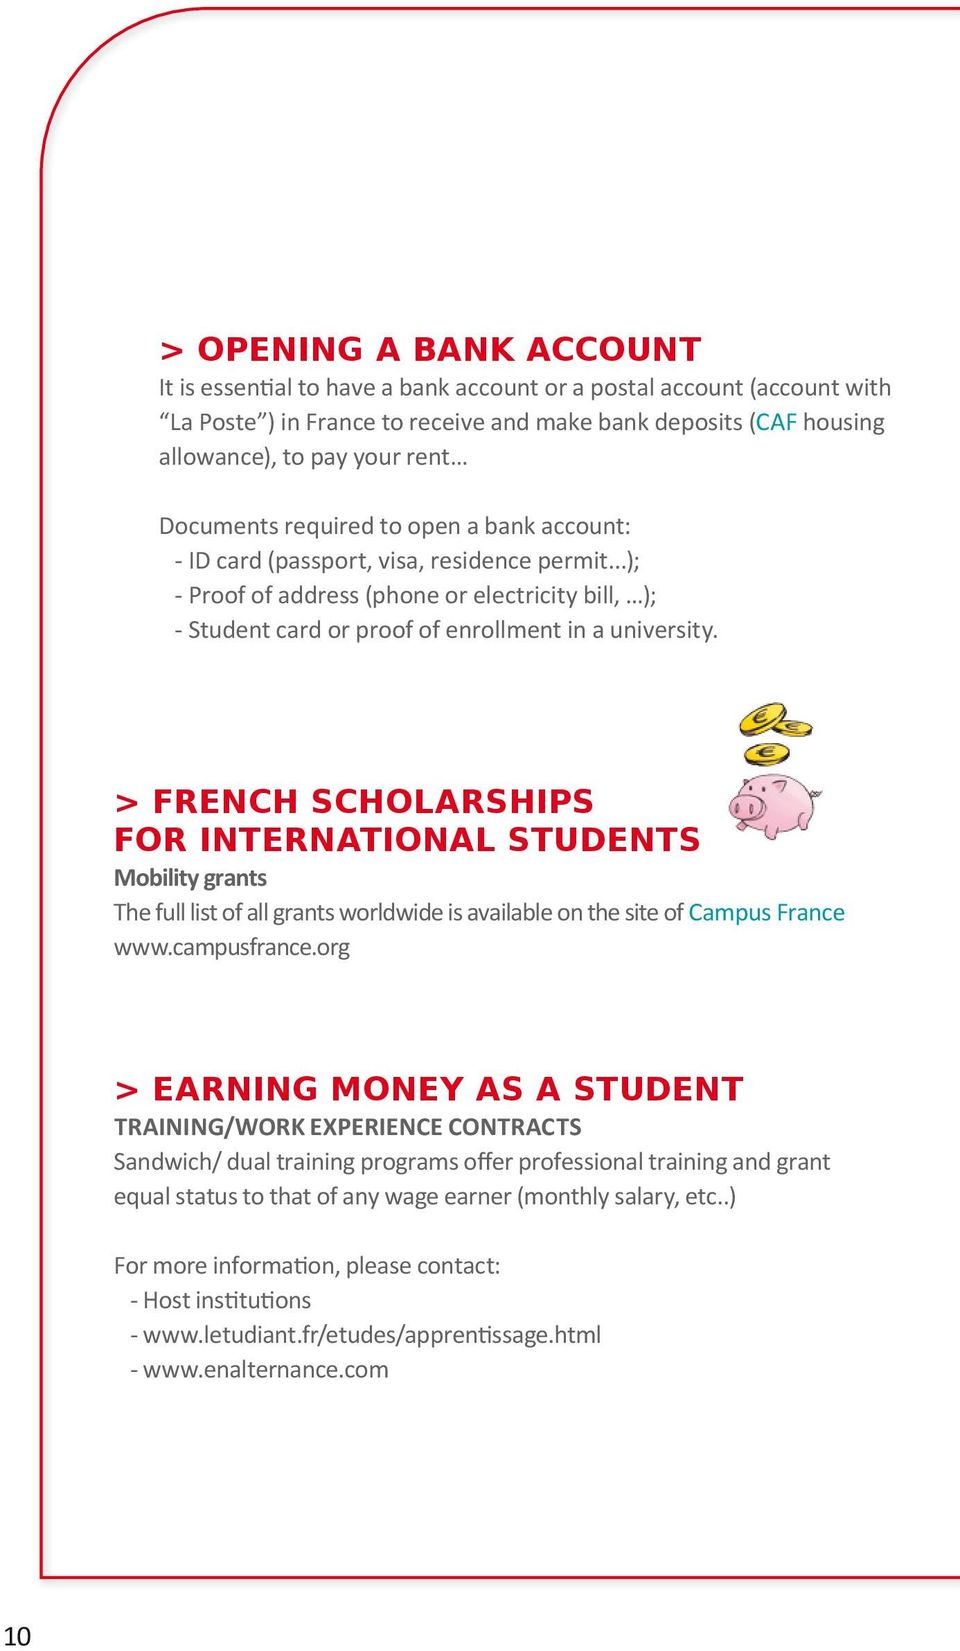 > FRENCH SCHOLARSHIPS FOR INTERNATIONAL STUDENTS Mobility grants The full list of all grants worldwide is available on the site of Campus France www.campusfrance.